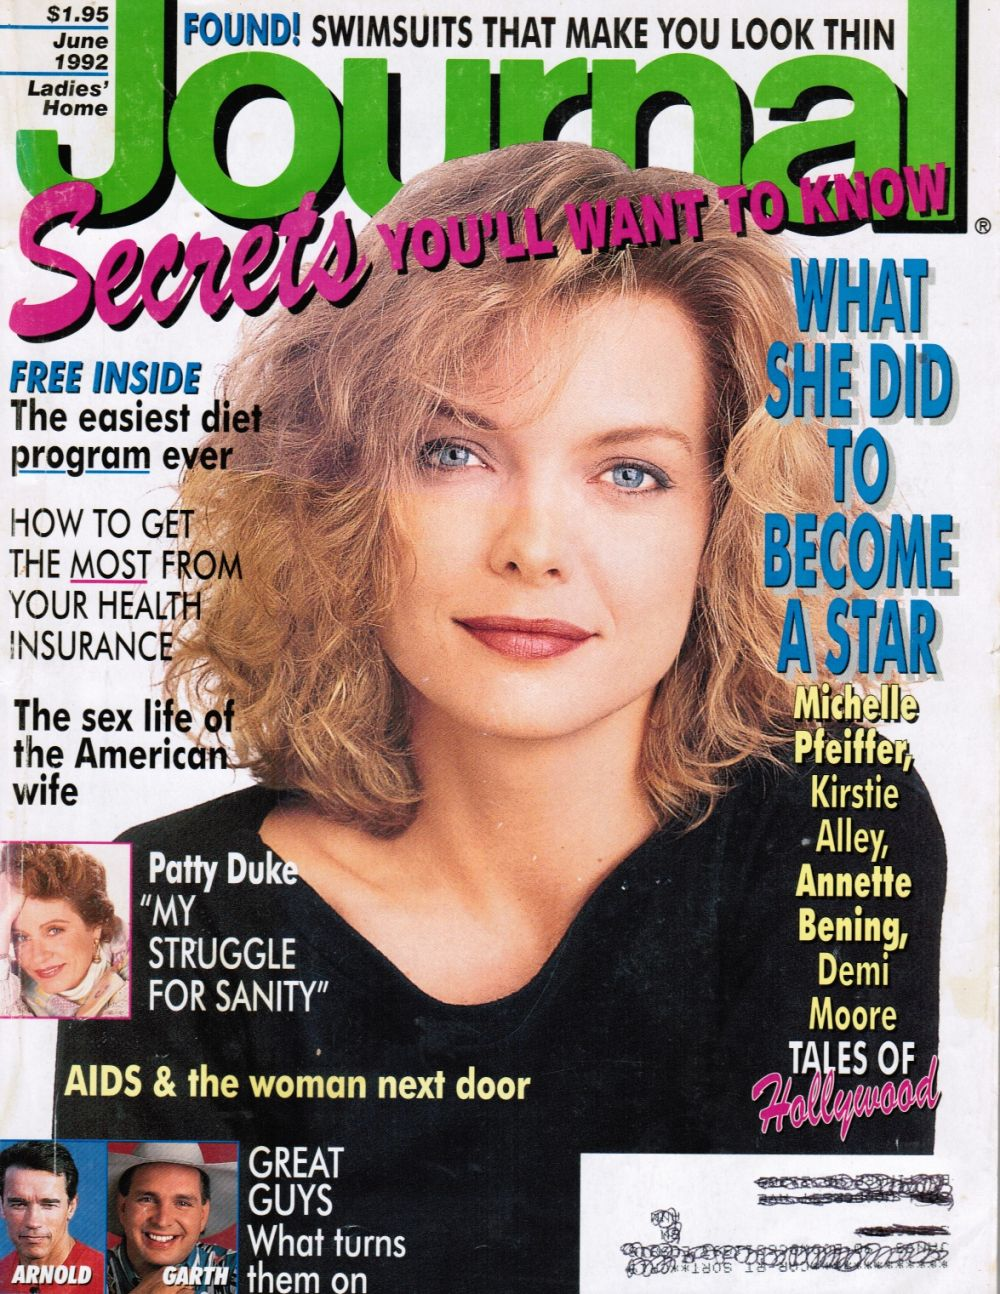 Image for Ladies' Home Journal: June 1992 (Michelle Pfeiffer Cover)